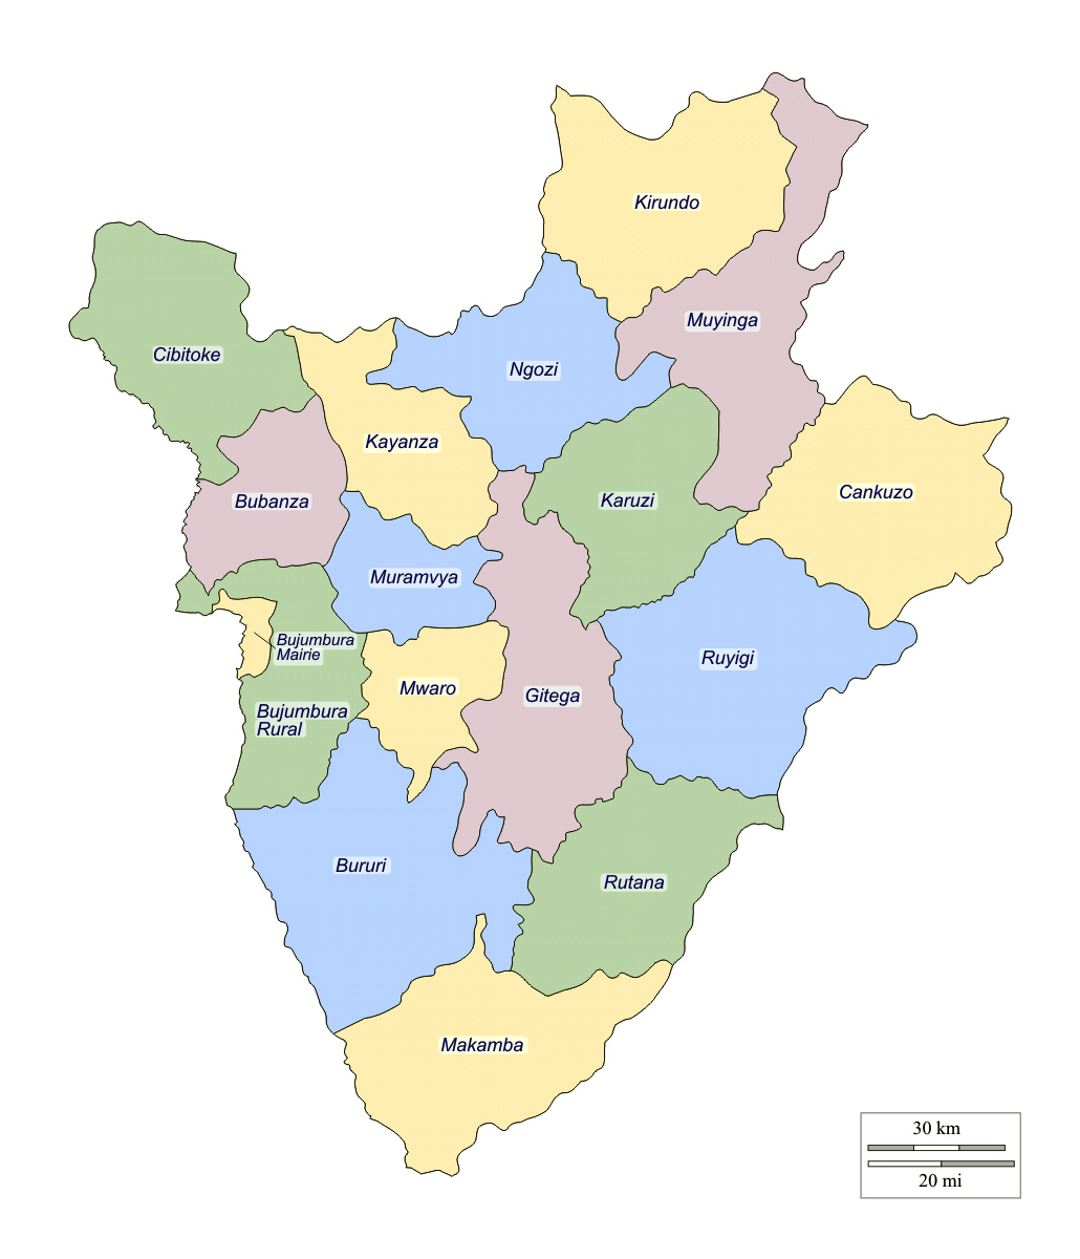 Detailed administrative divisions map of Burundi